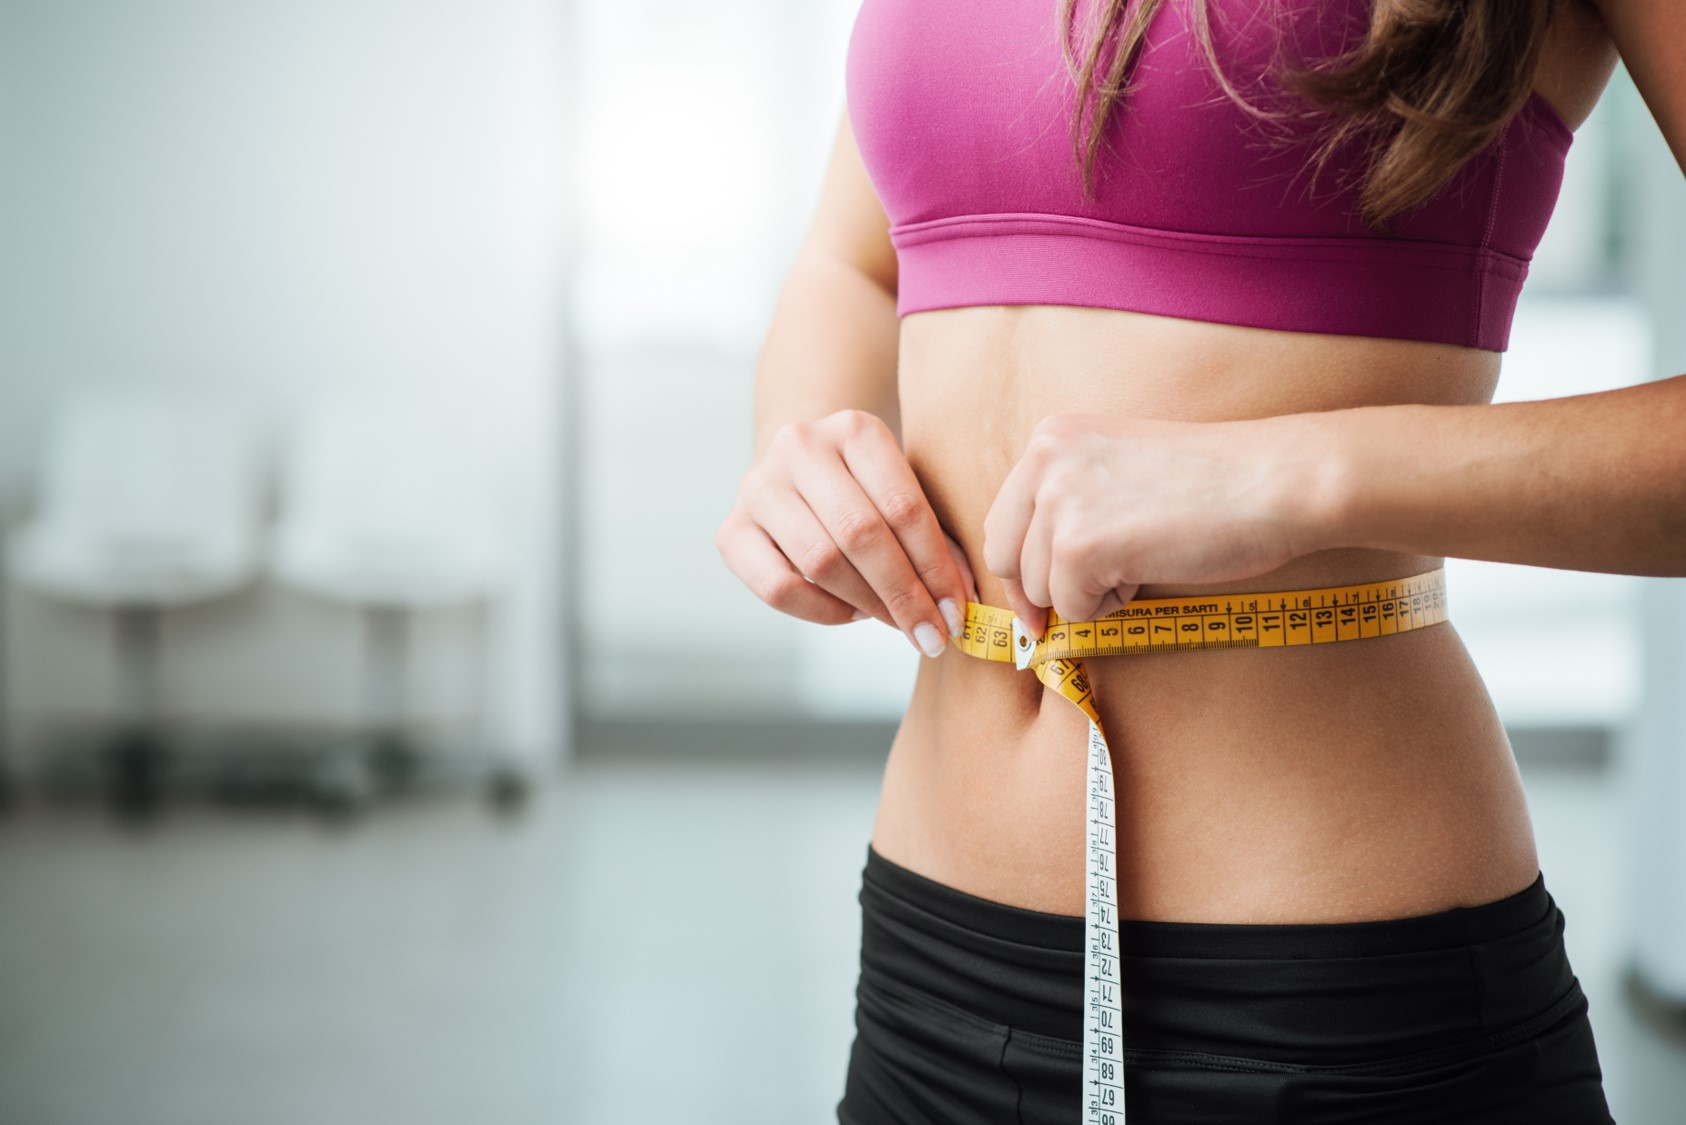 OzheanAM - Slimming treatment